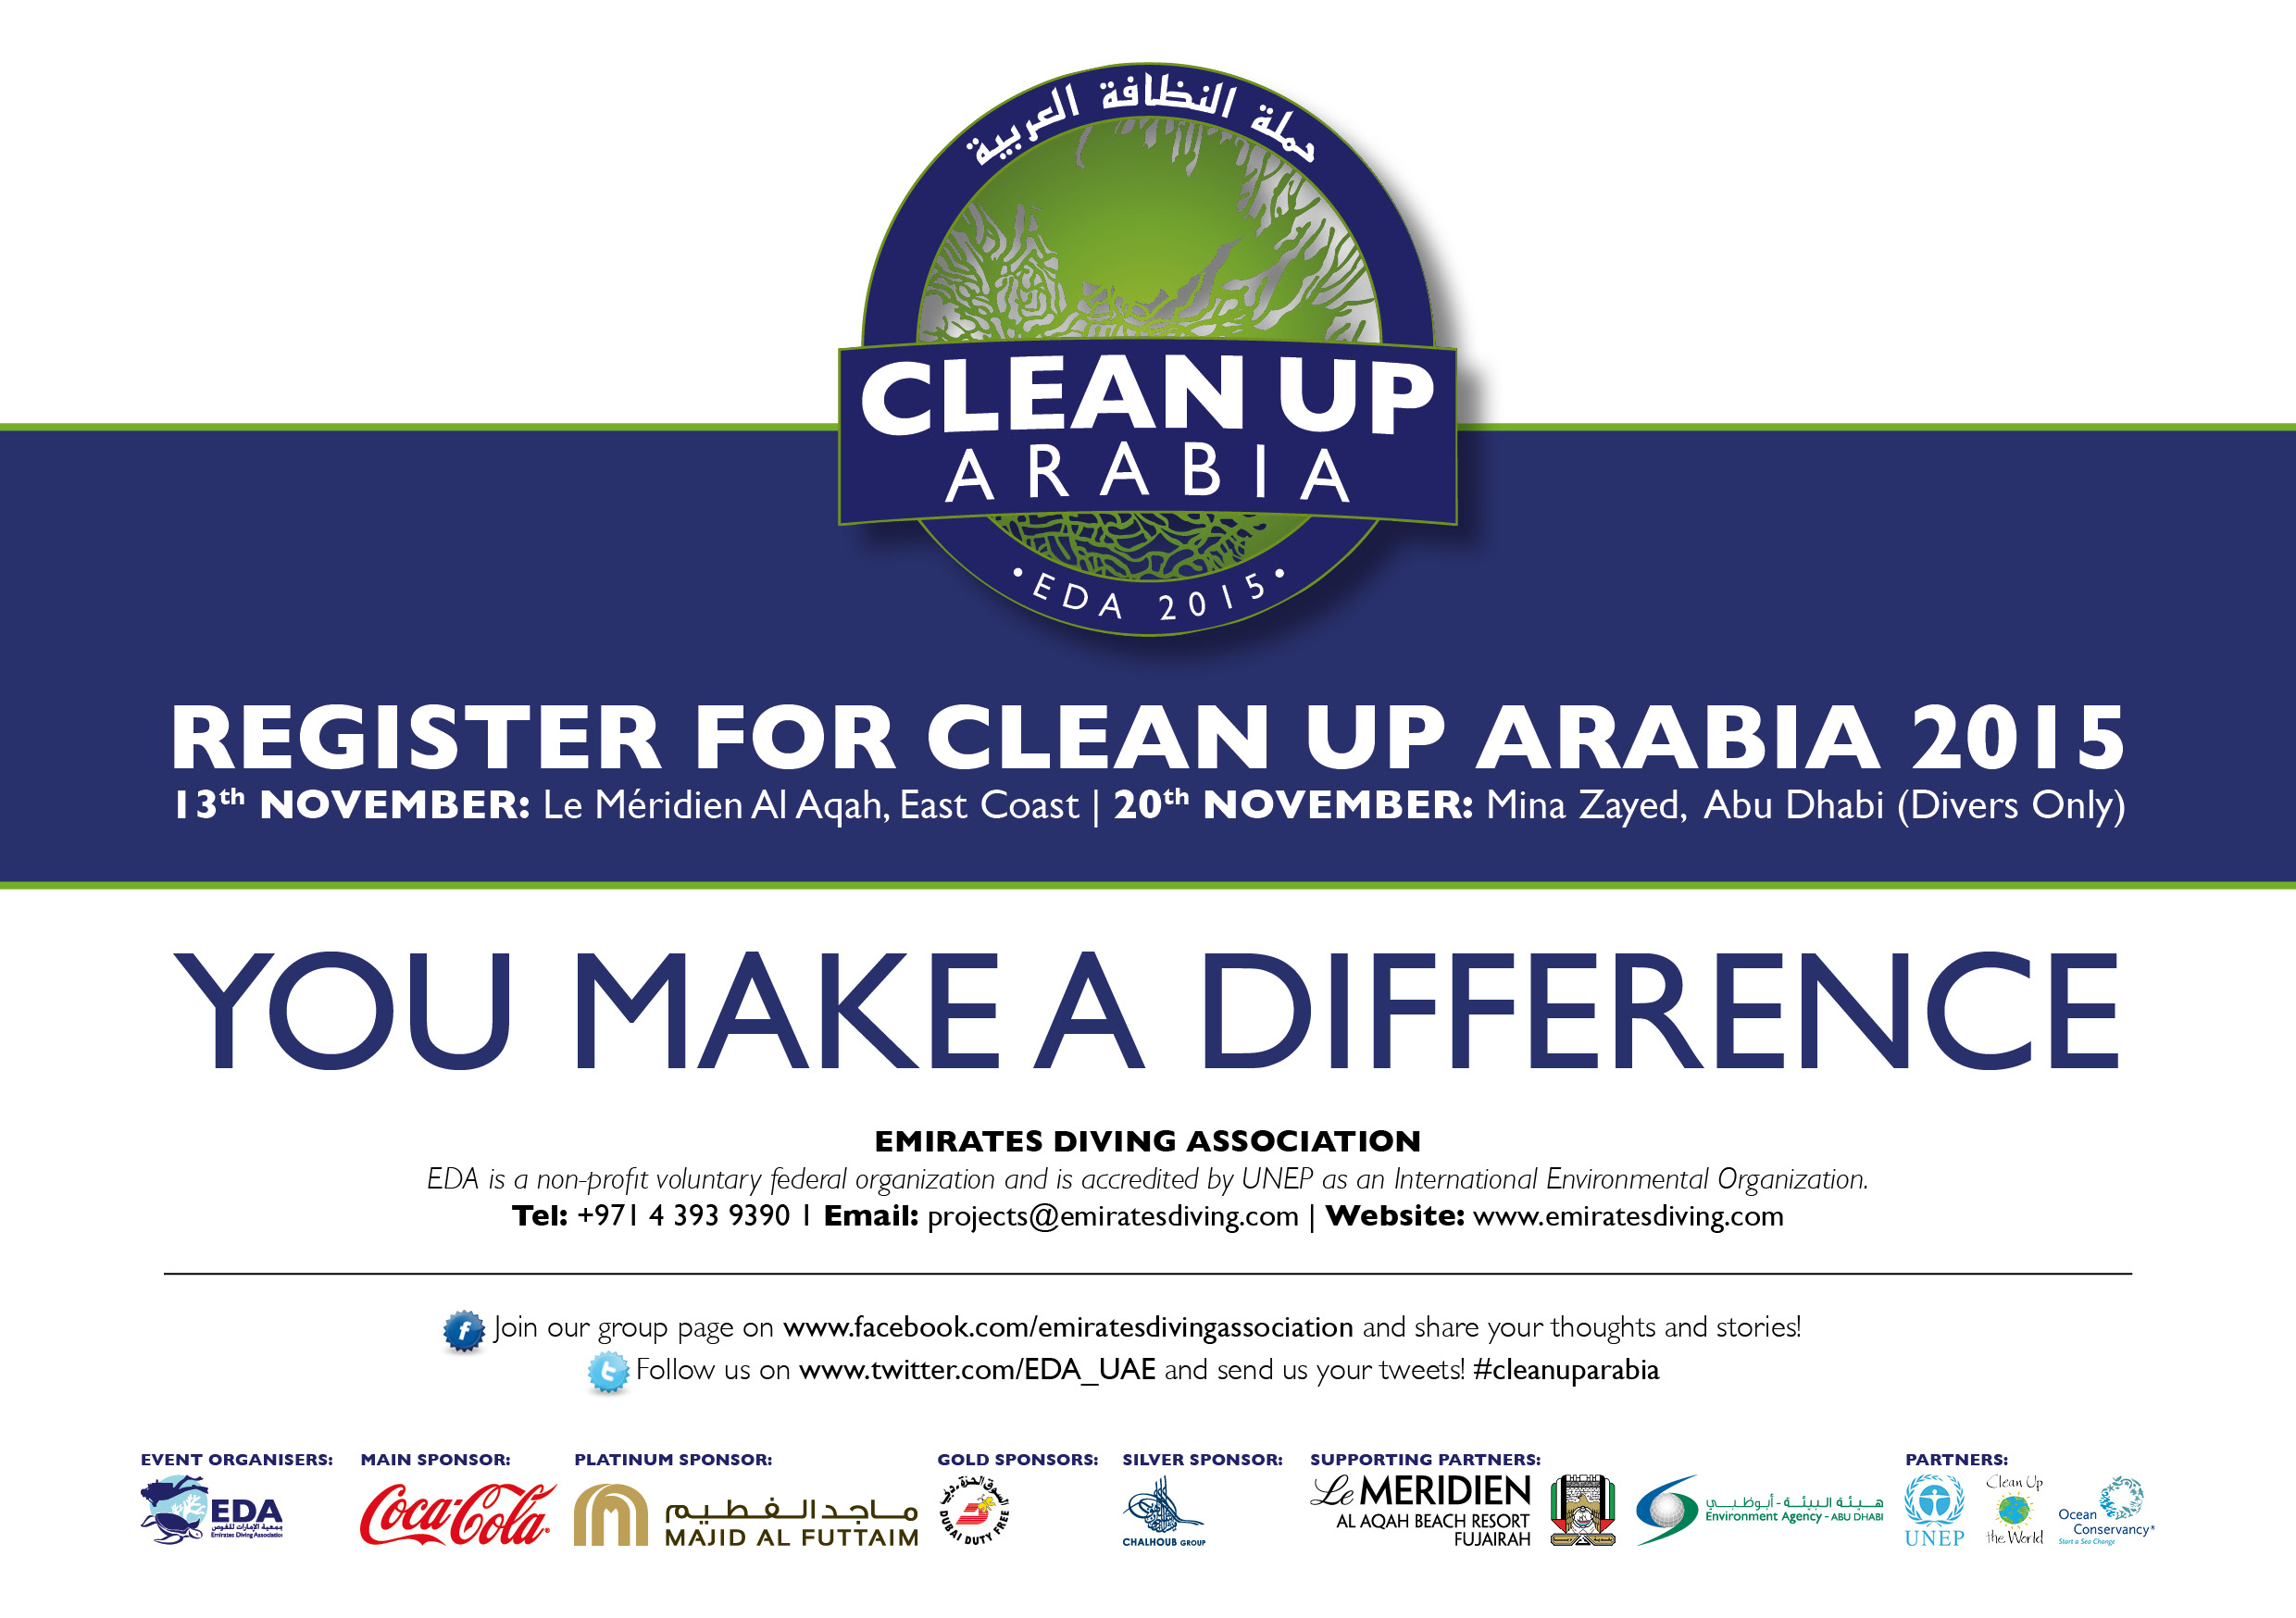 Clean_Up_Arabia_AD_2015